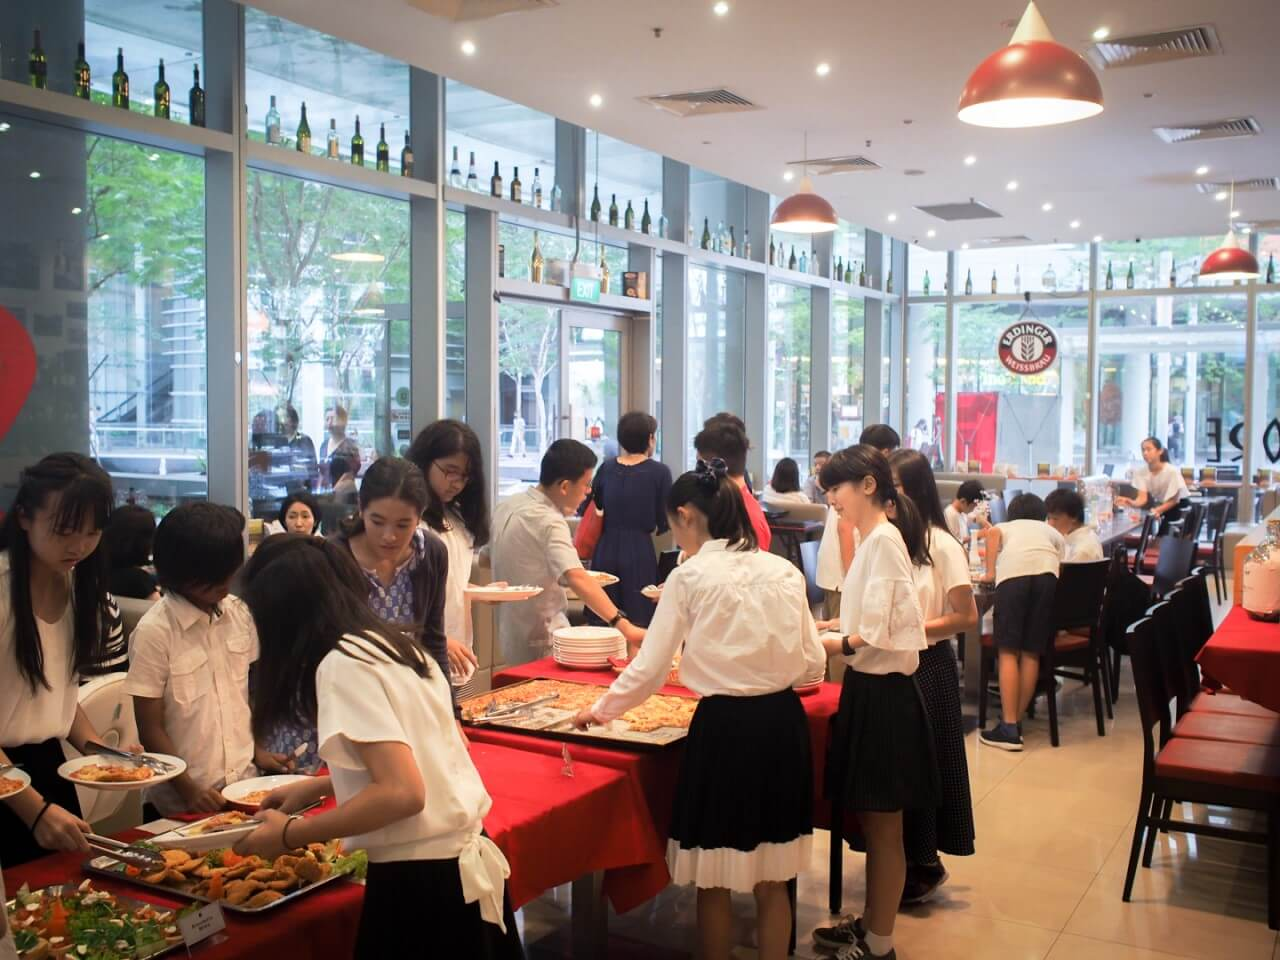 Group of students taking food from buffet spread